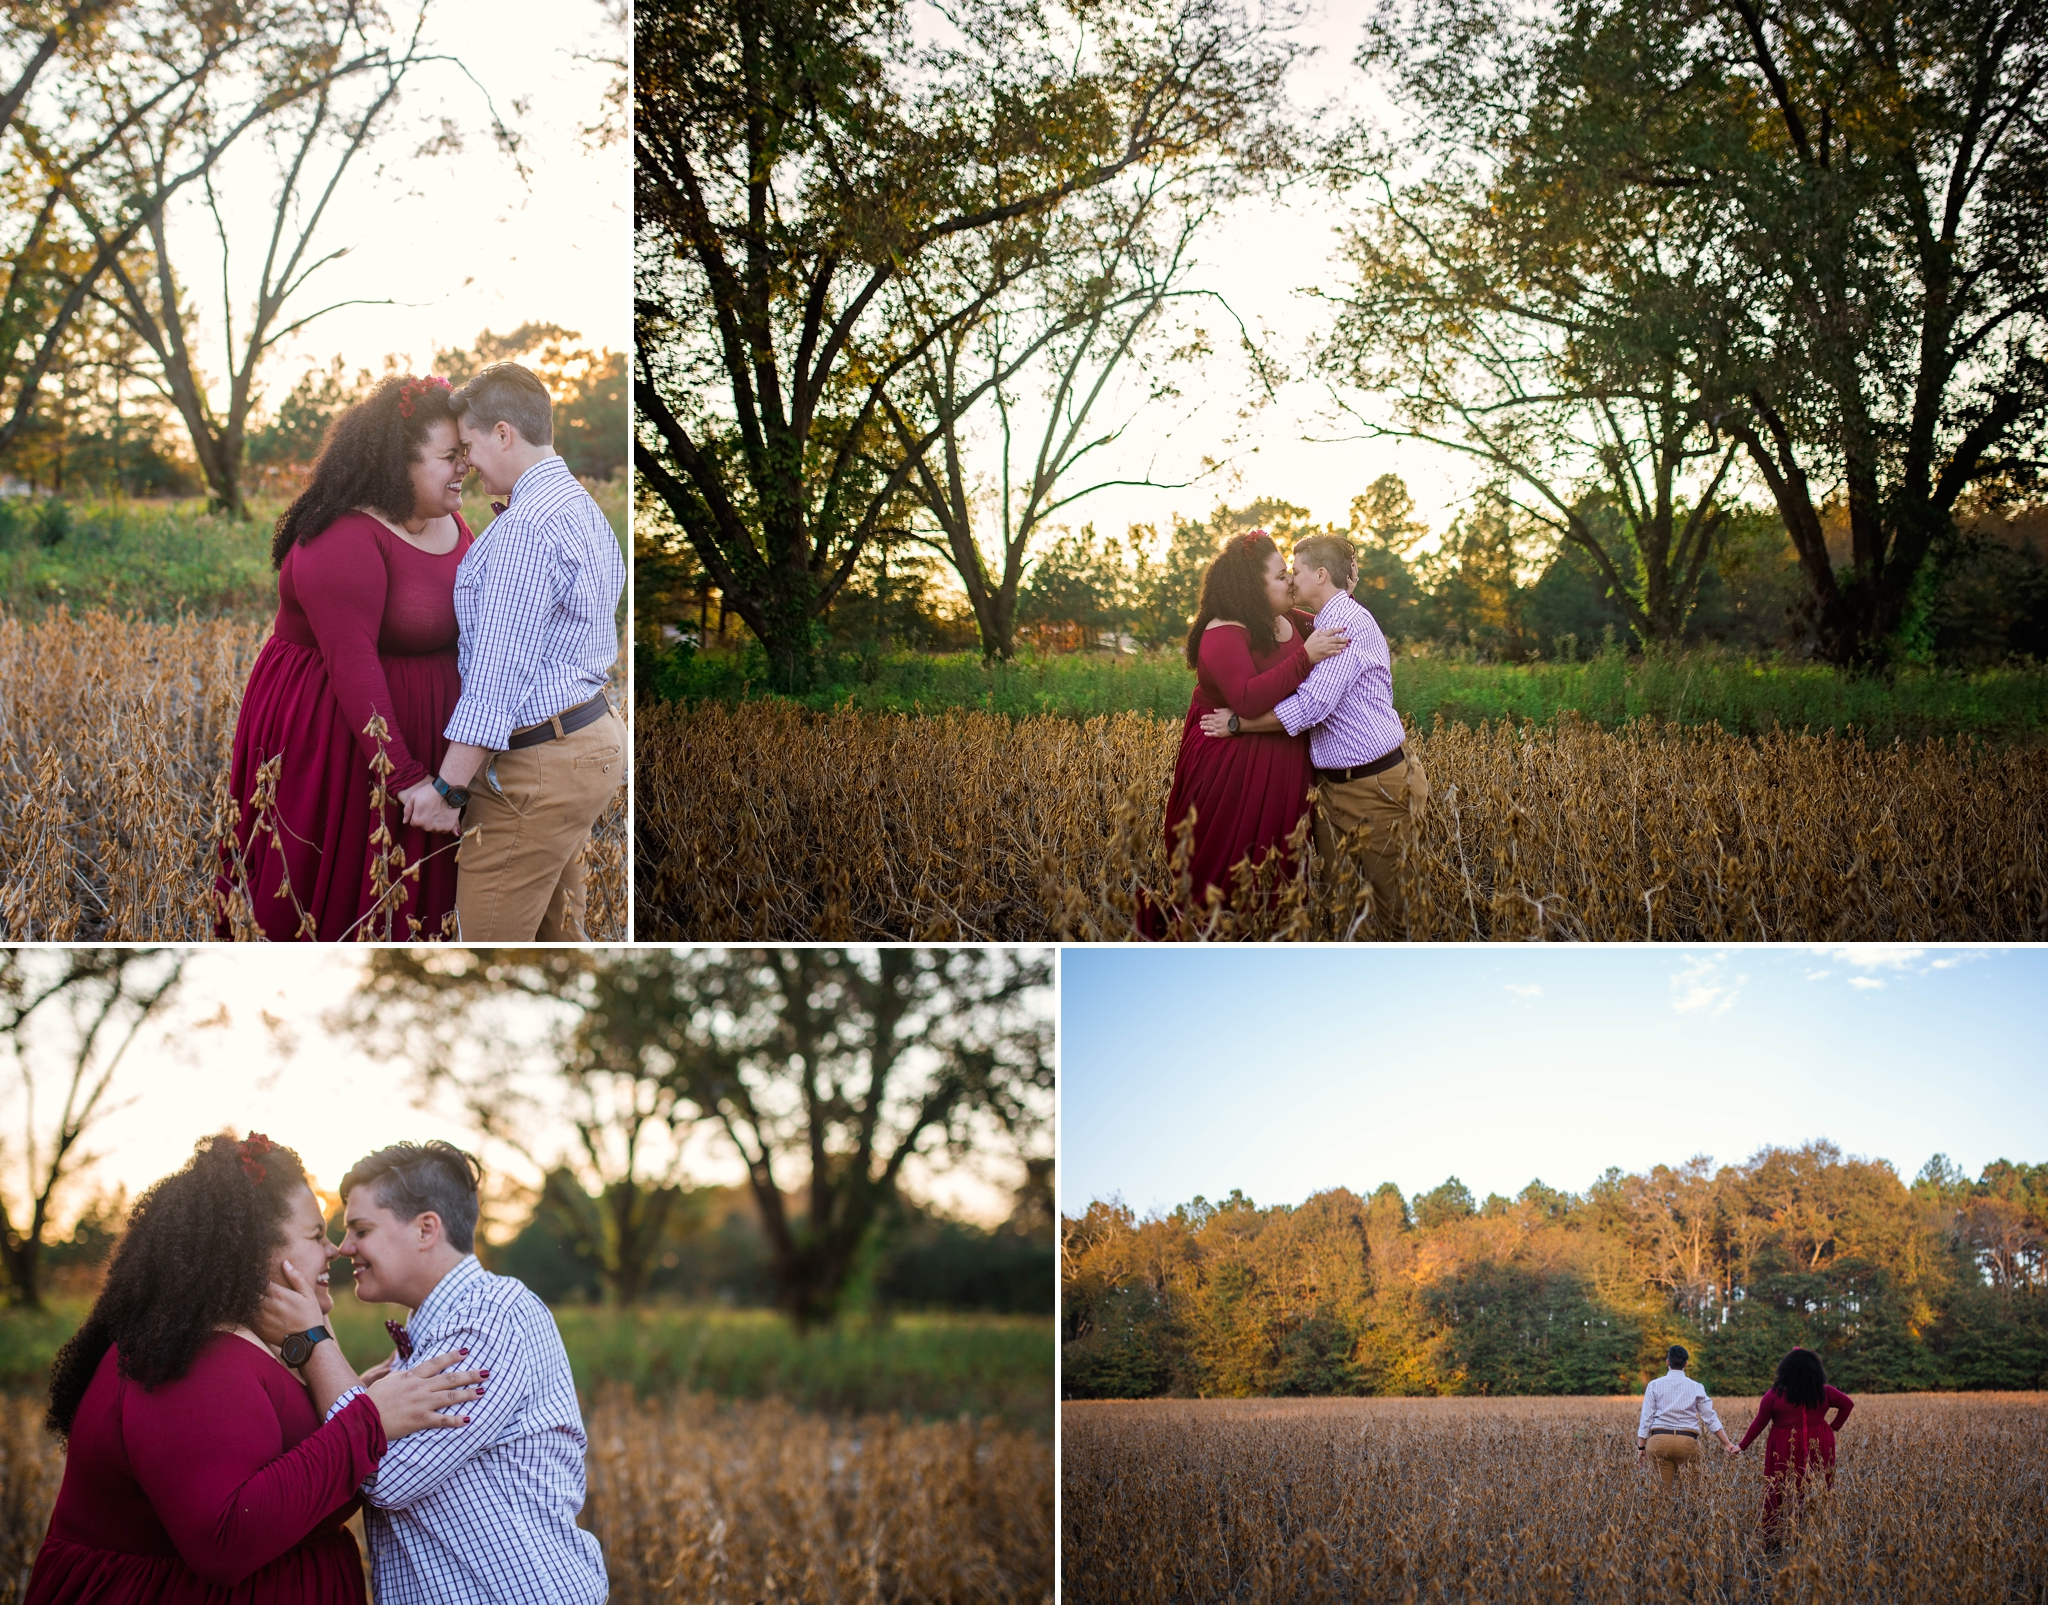 Mercedes + Nicole - Same Sex Engagement Photography Session in Fayetteville, NC - Gay Wedding Photographer in North Carolina